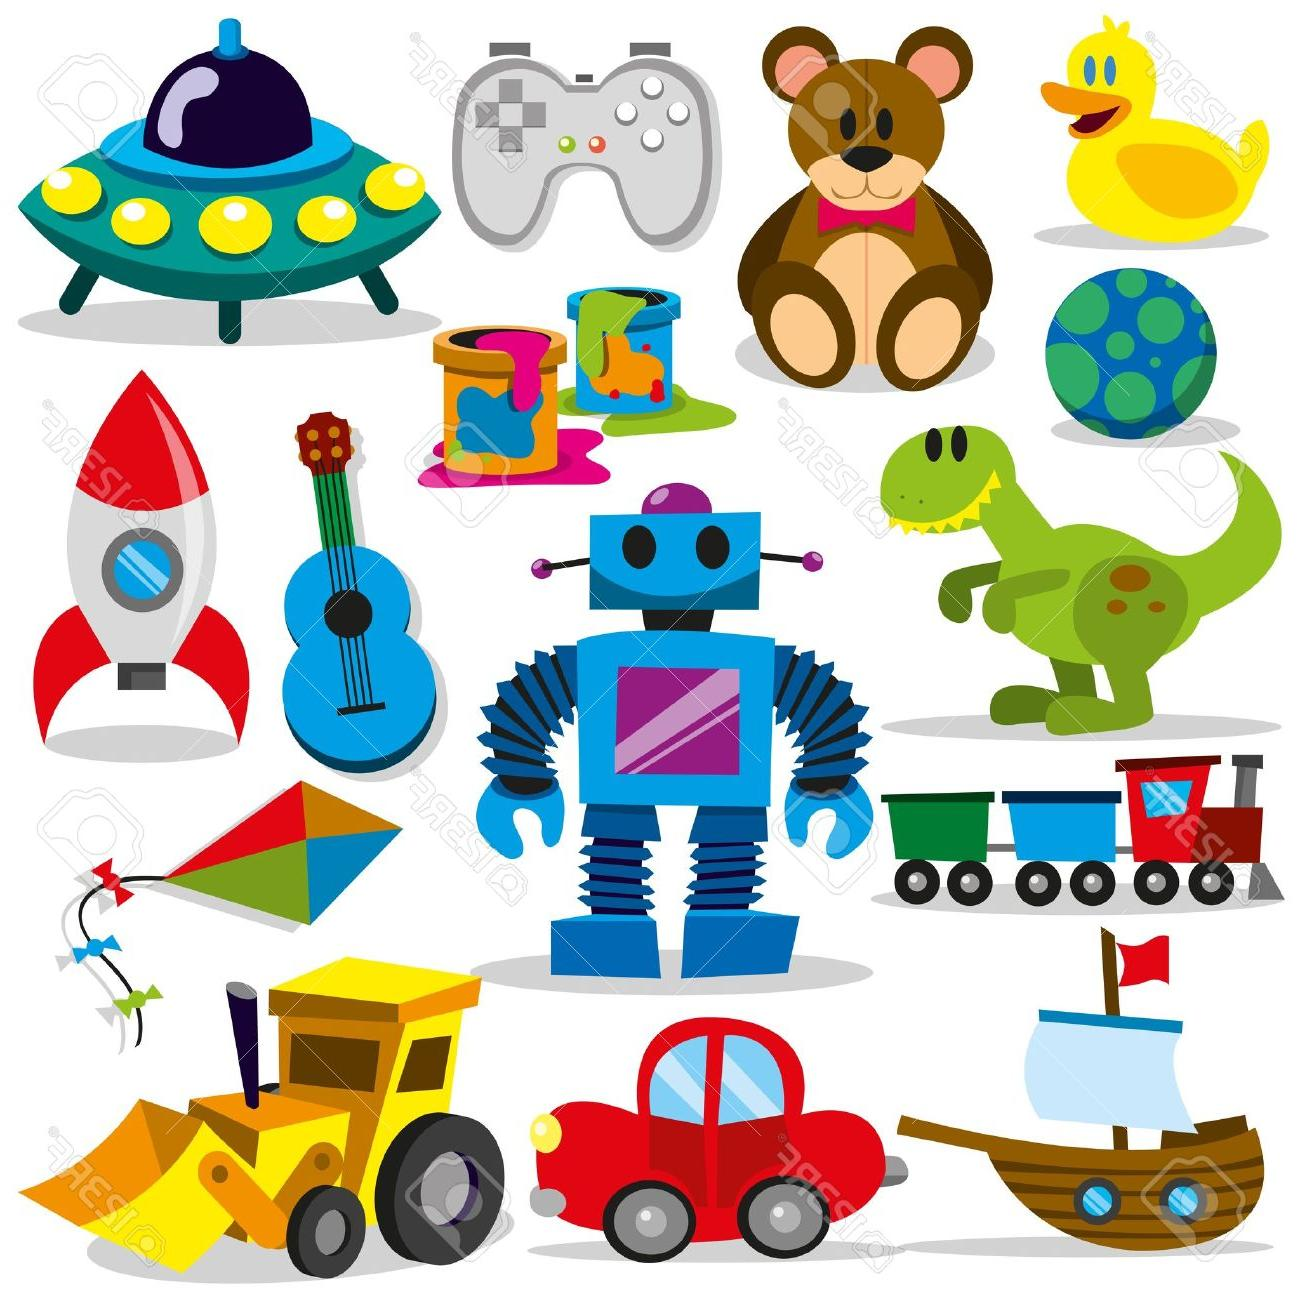 Toy clipart vector clip library library HD Vector Toy Vector Library » Free Vector Art, Images ... clip library library